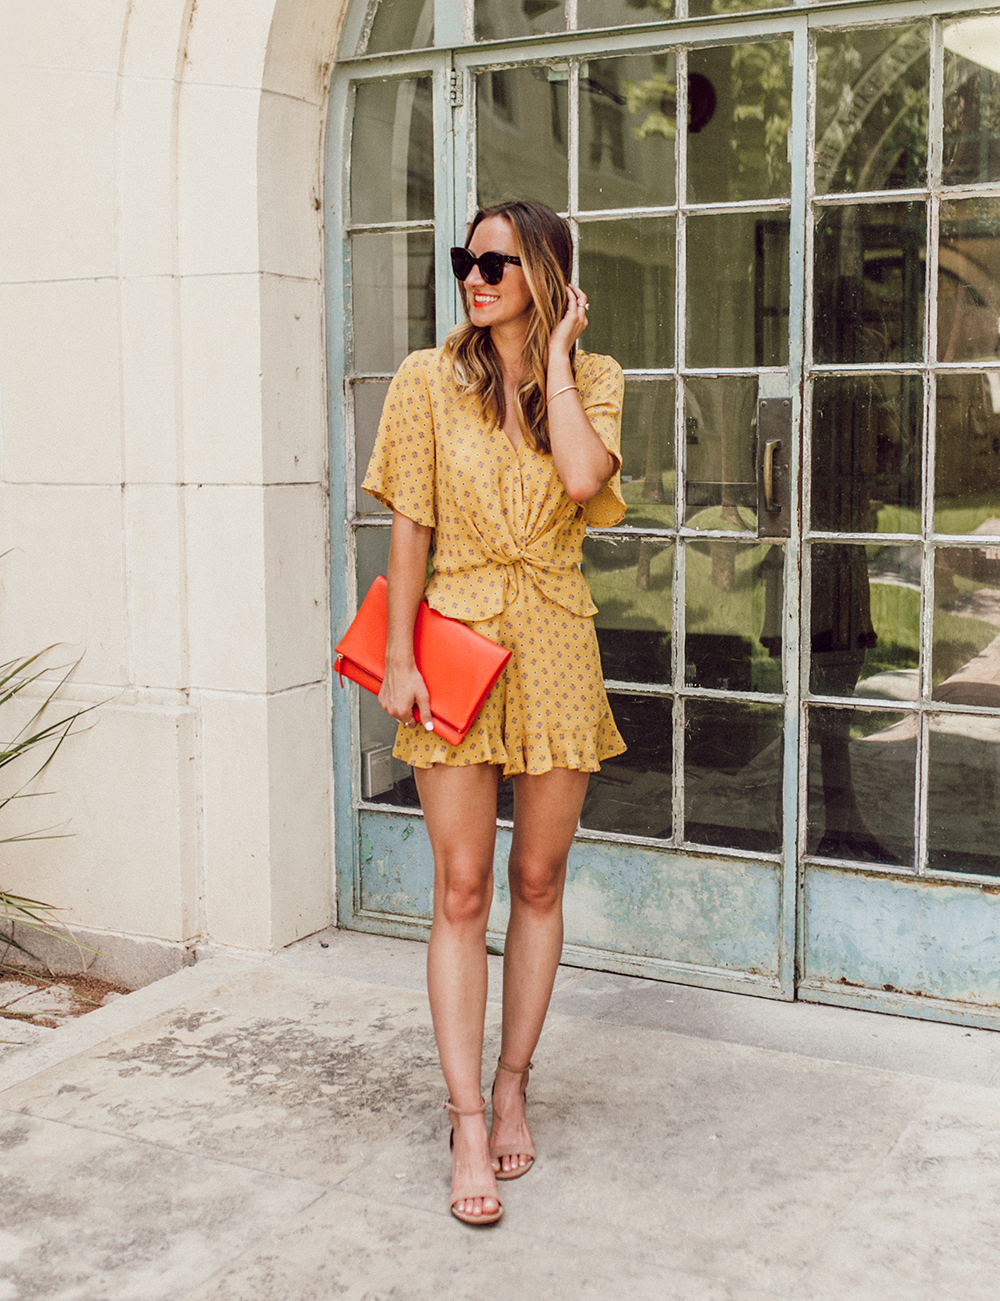 livvyland-blog-olivia-watson-austin-texas-fashion-lifestyle-blogger-river-island-floral-print-yellow-knot-front-romper-summer-occasion-outfit-idea-8